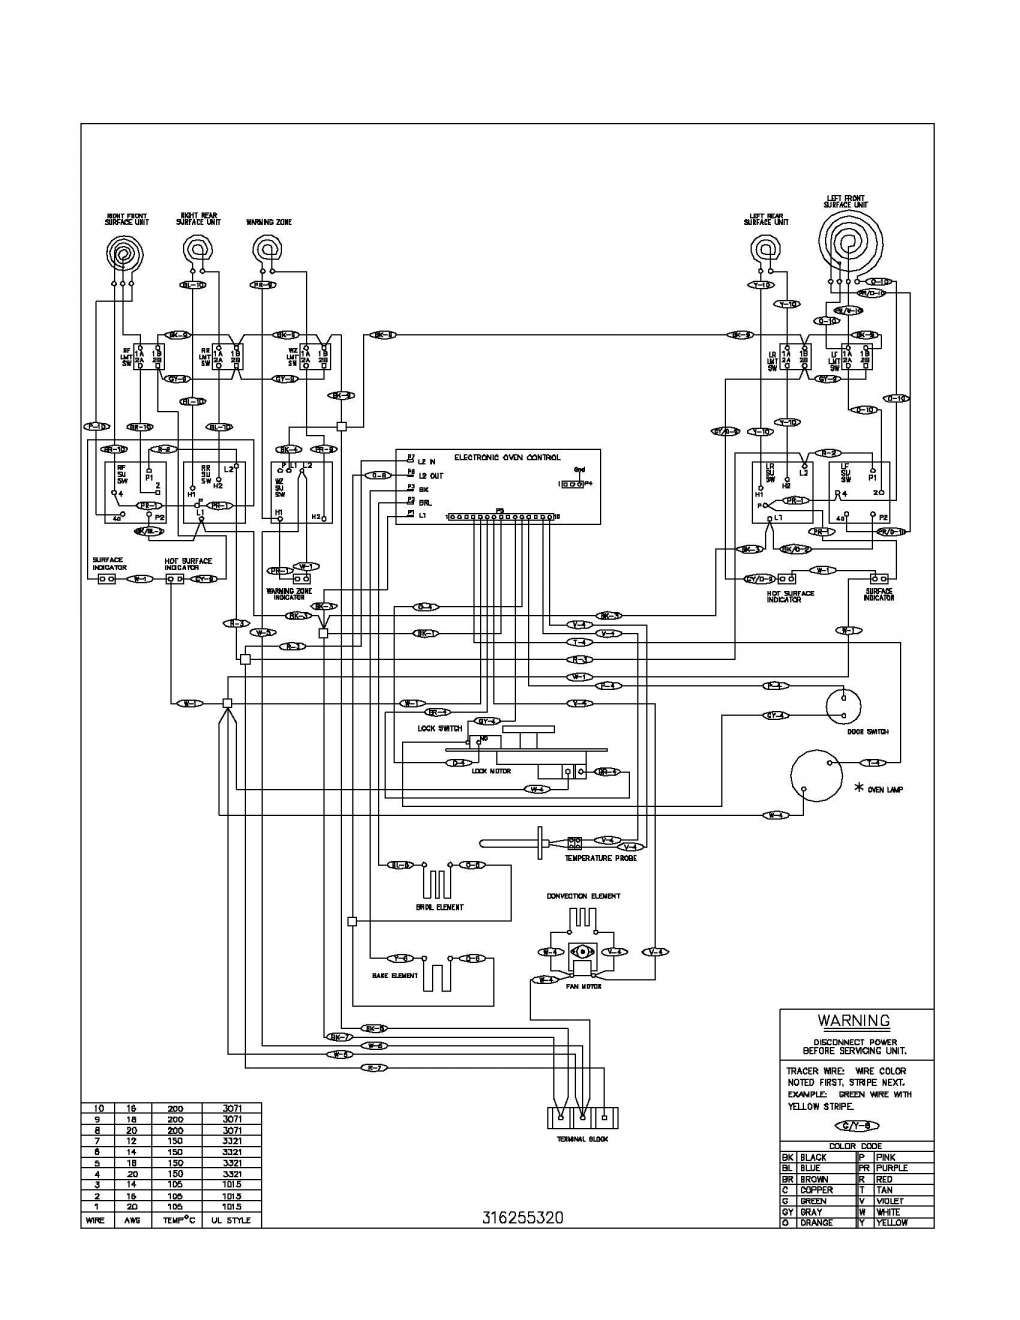 [DIAGRAM_5UK]  12+ Hotpoint Electric Oven Wiring Diagram - -  #hotpointelectricovenwiringdiagram Check more at https://wiringg.… |  Electric stove, Electric oven, Electric cooktop | Hotpoint Refrigerator Wiring Schematic |  | Pinterest